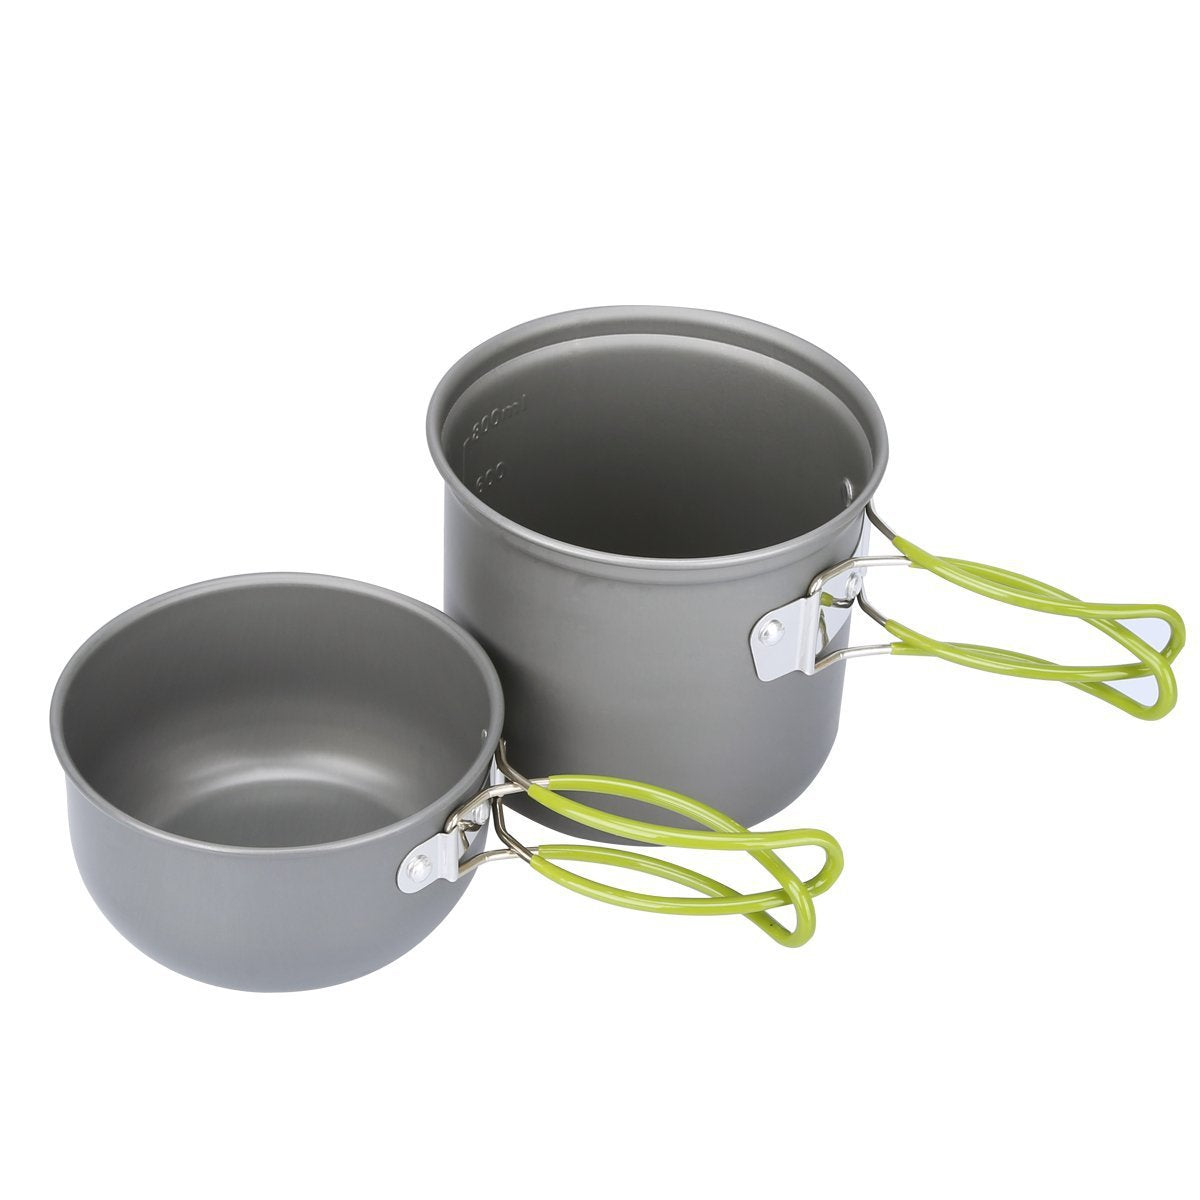 Portable Camping Cookware